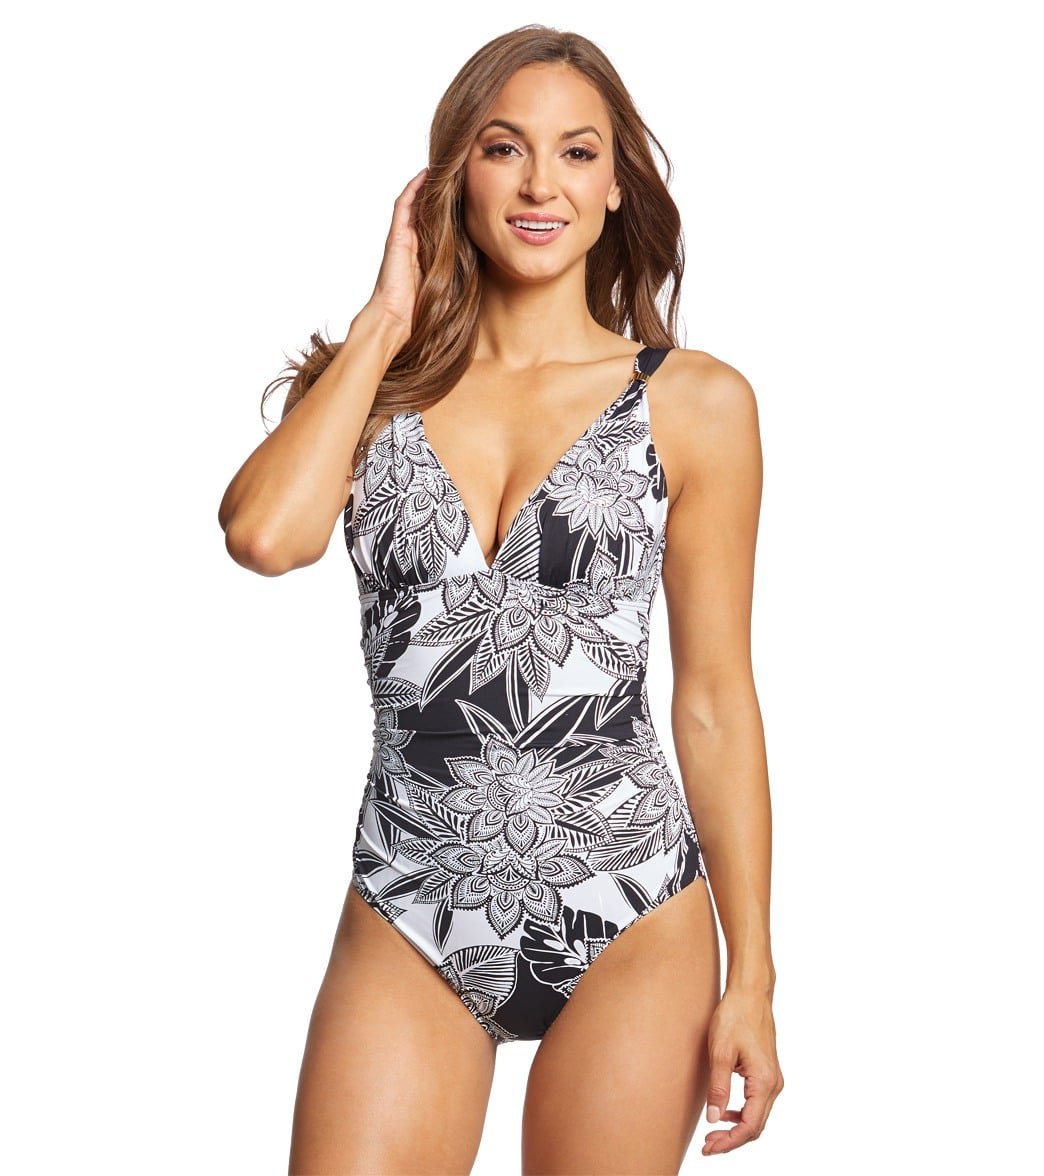 a413a4d8407 Lauren Ralph Lauren Graphic Floral Slimming Fit Plunge One Piece Swimsuit  at SwimOutlet.com - Free Shipping